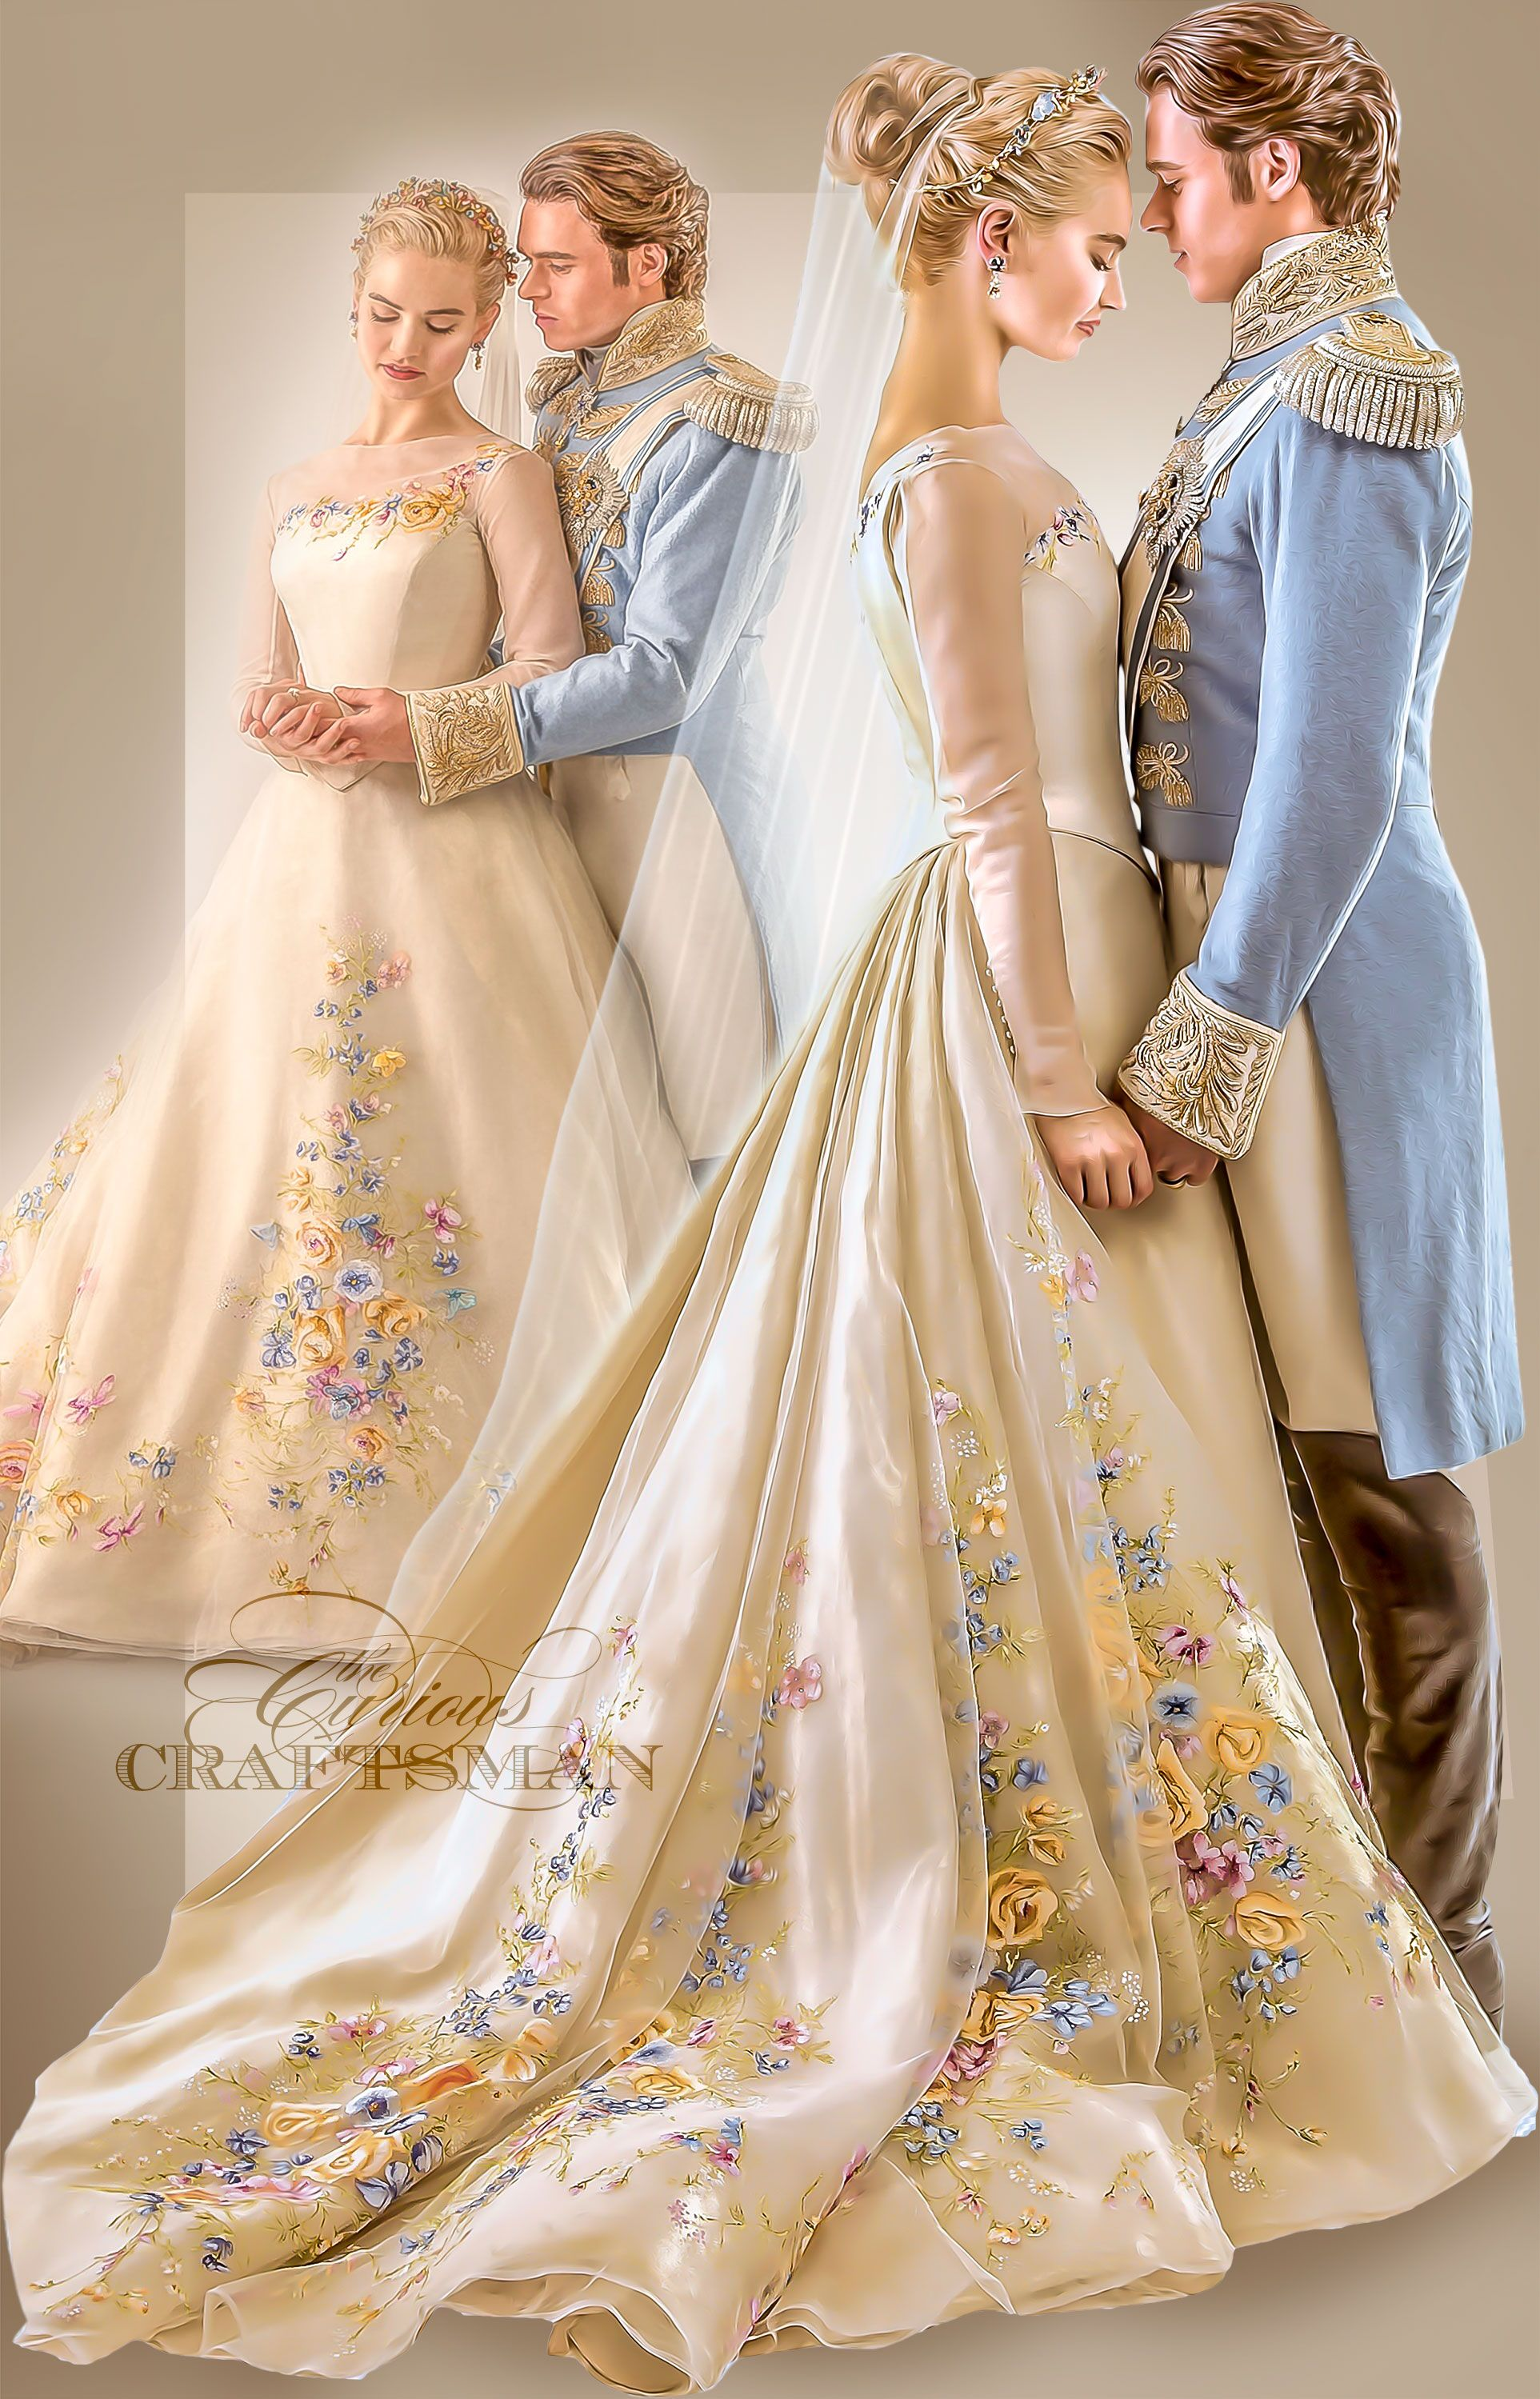 Pin By Veerle L On A Good Mystery In 2020 Wedding Dresses Cinderella Cinderella Dresses Disney Dresses